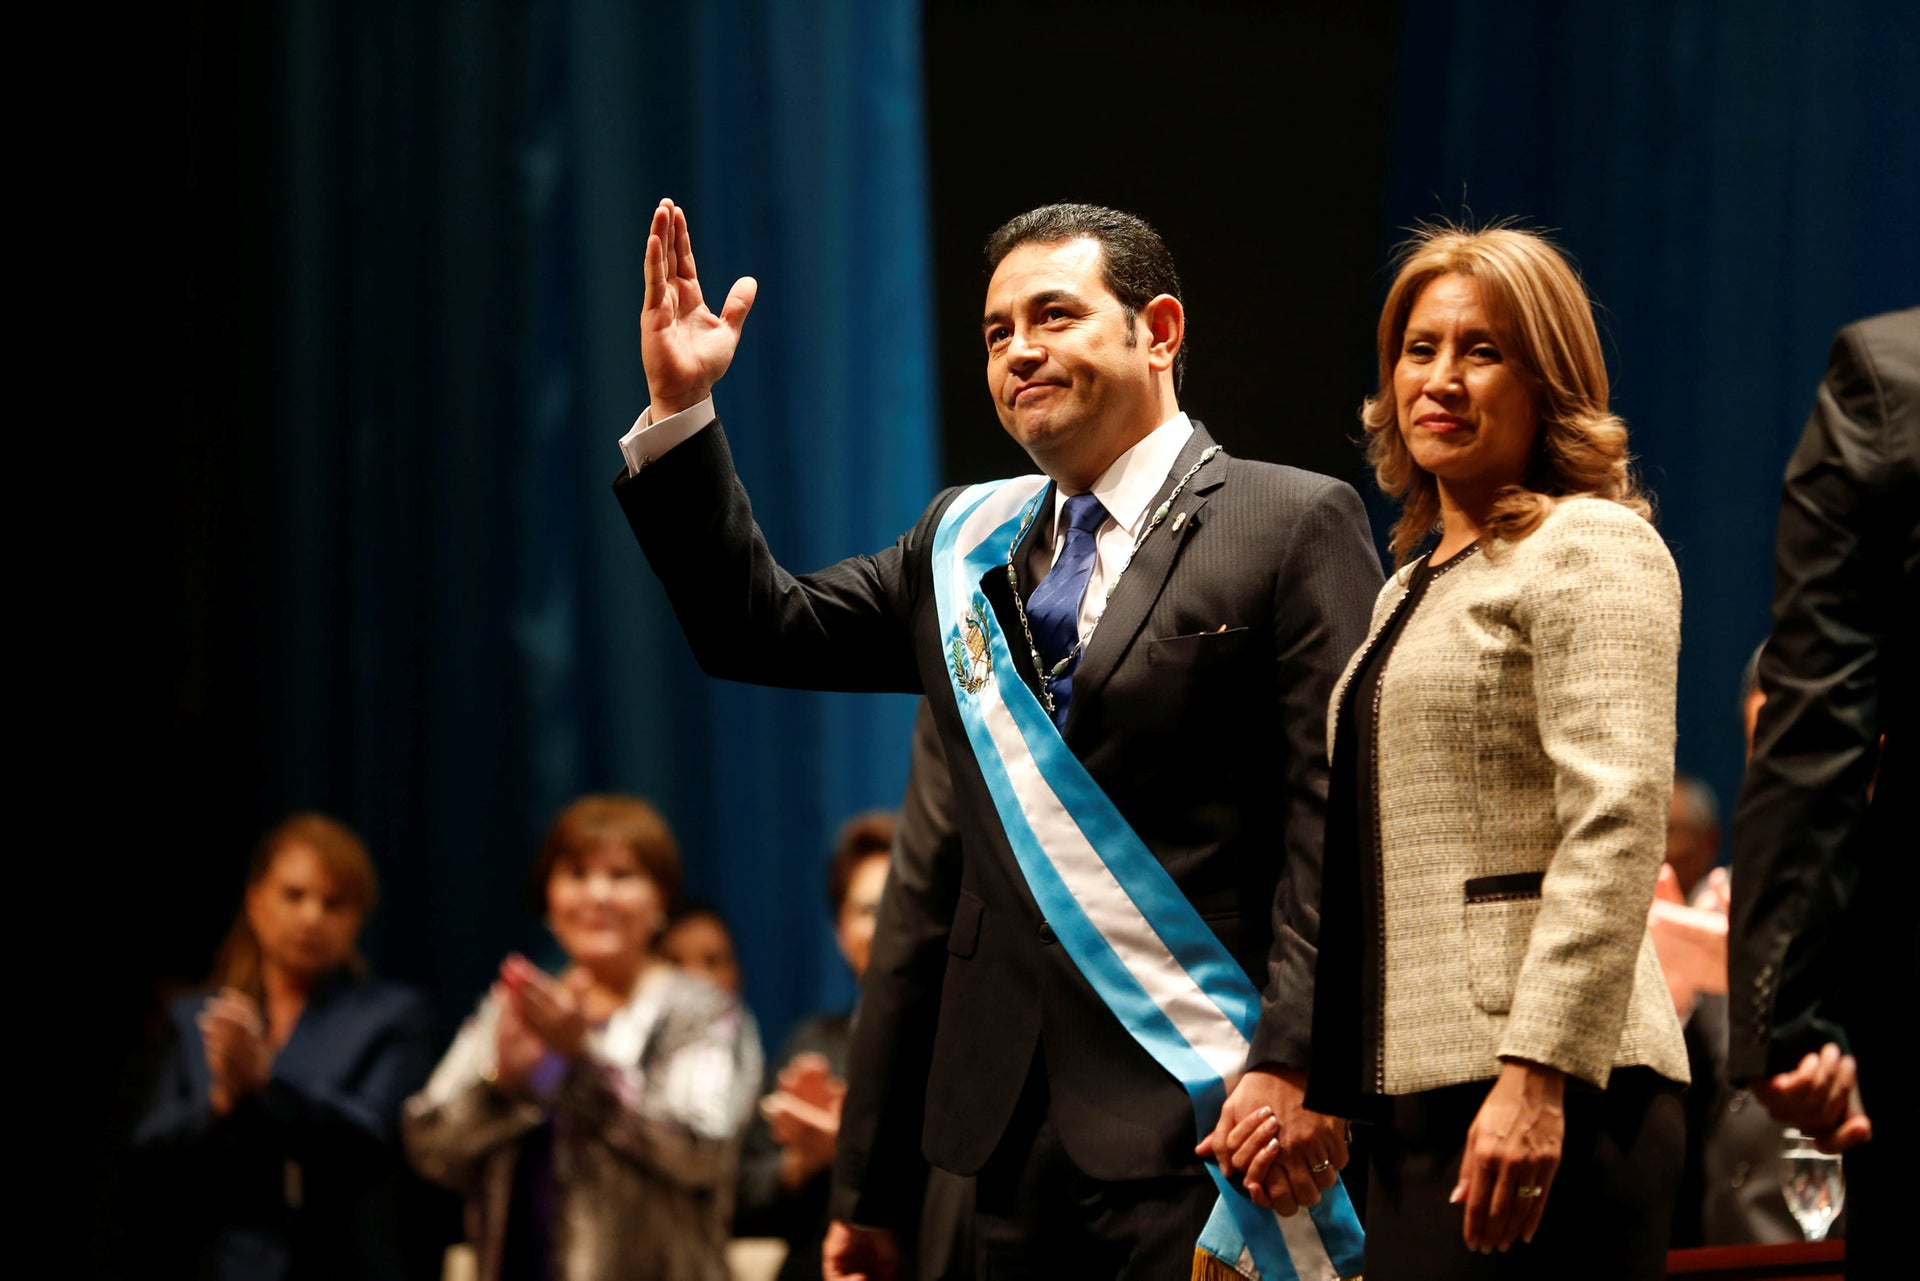 Hilda Patricia Marroquin de Morales accompanies her husband Guatemalan President Jimmy Morales, at the National Theater in Guatemala City.